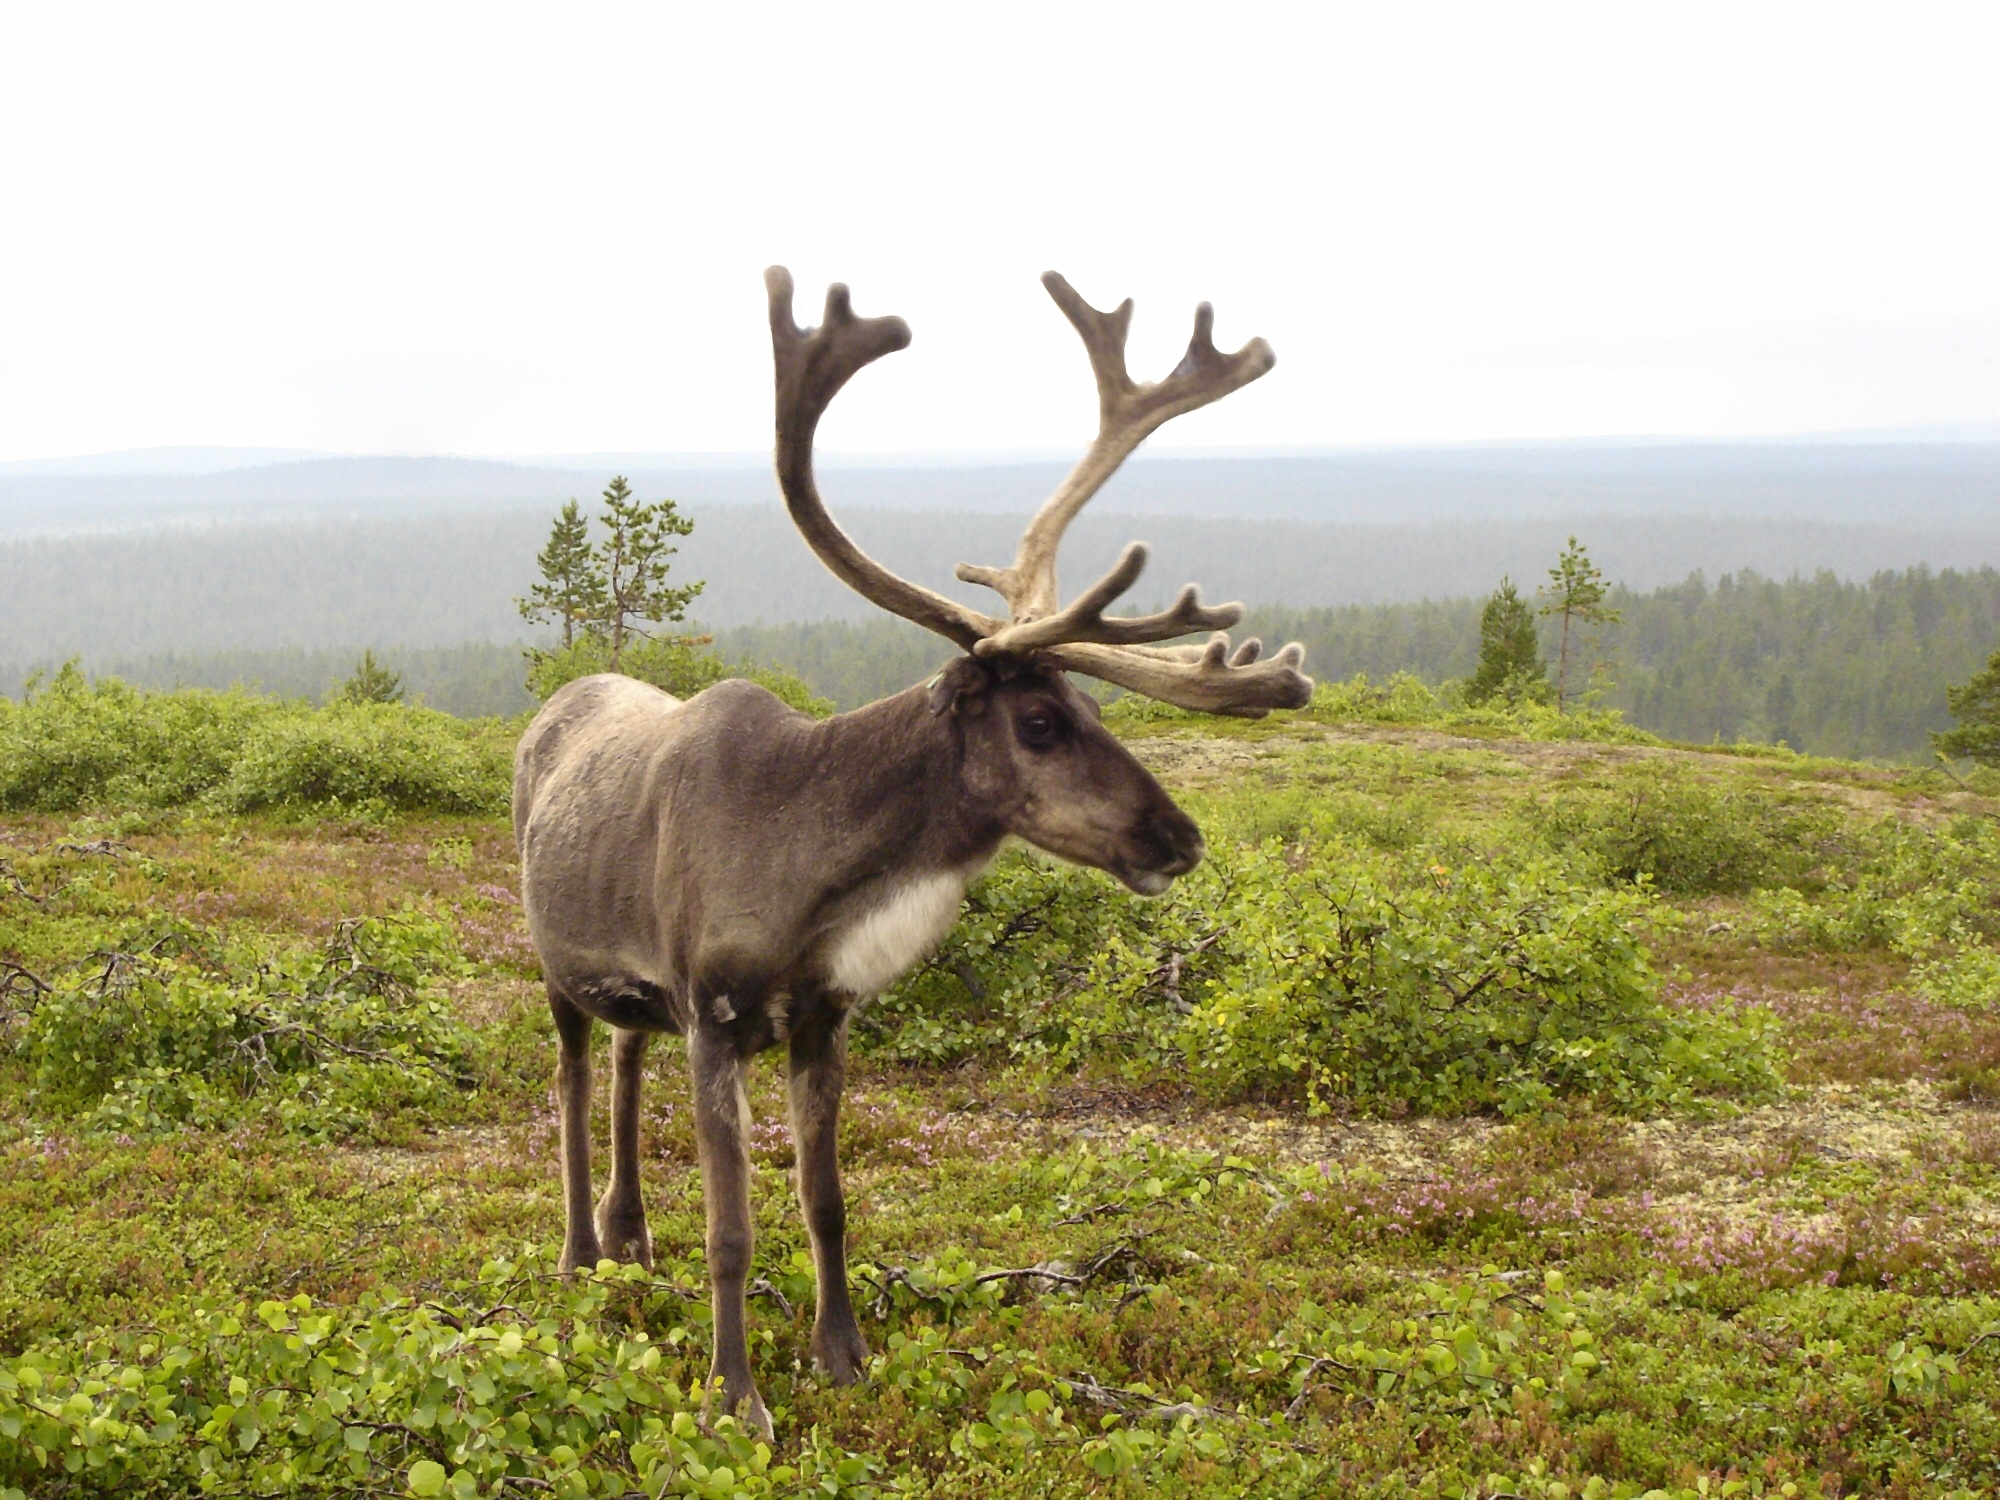 The Reindeer Also Known As Caribou In North America